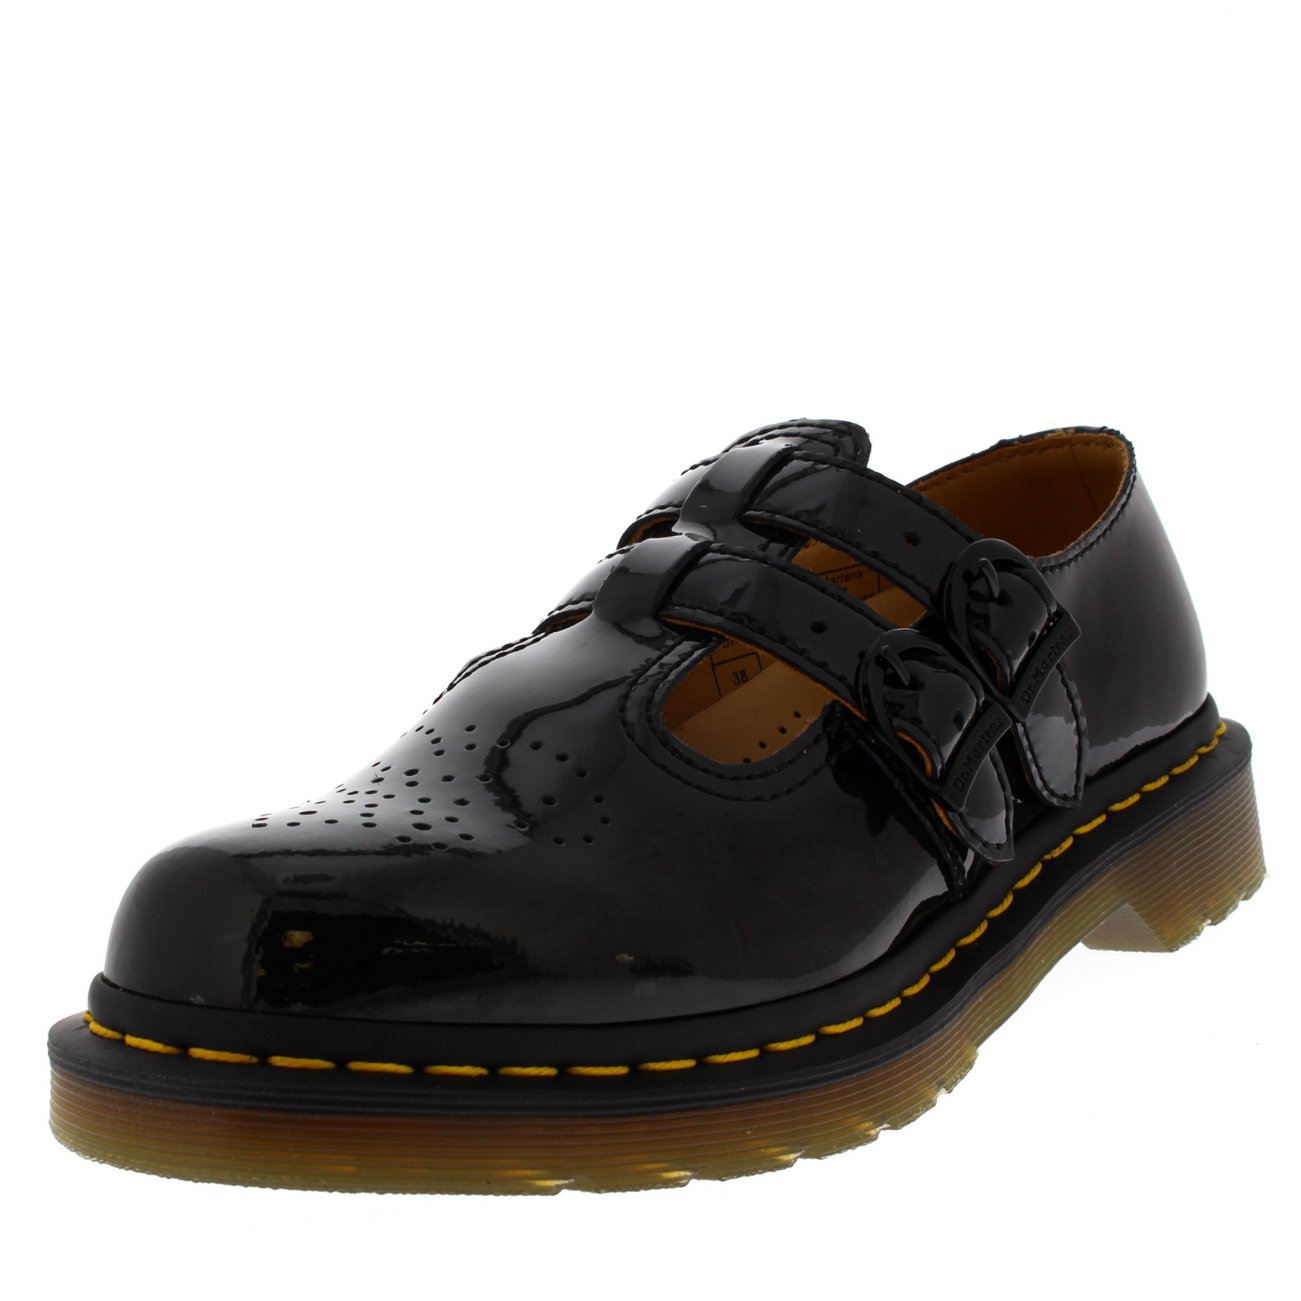 Dr Martens 8065 Mary Jane Patent